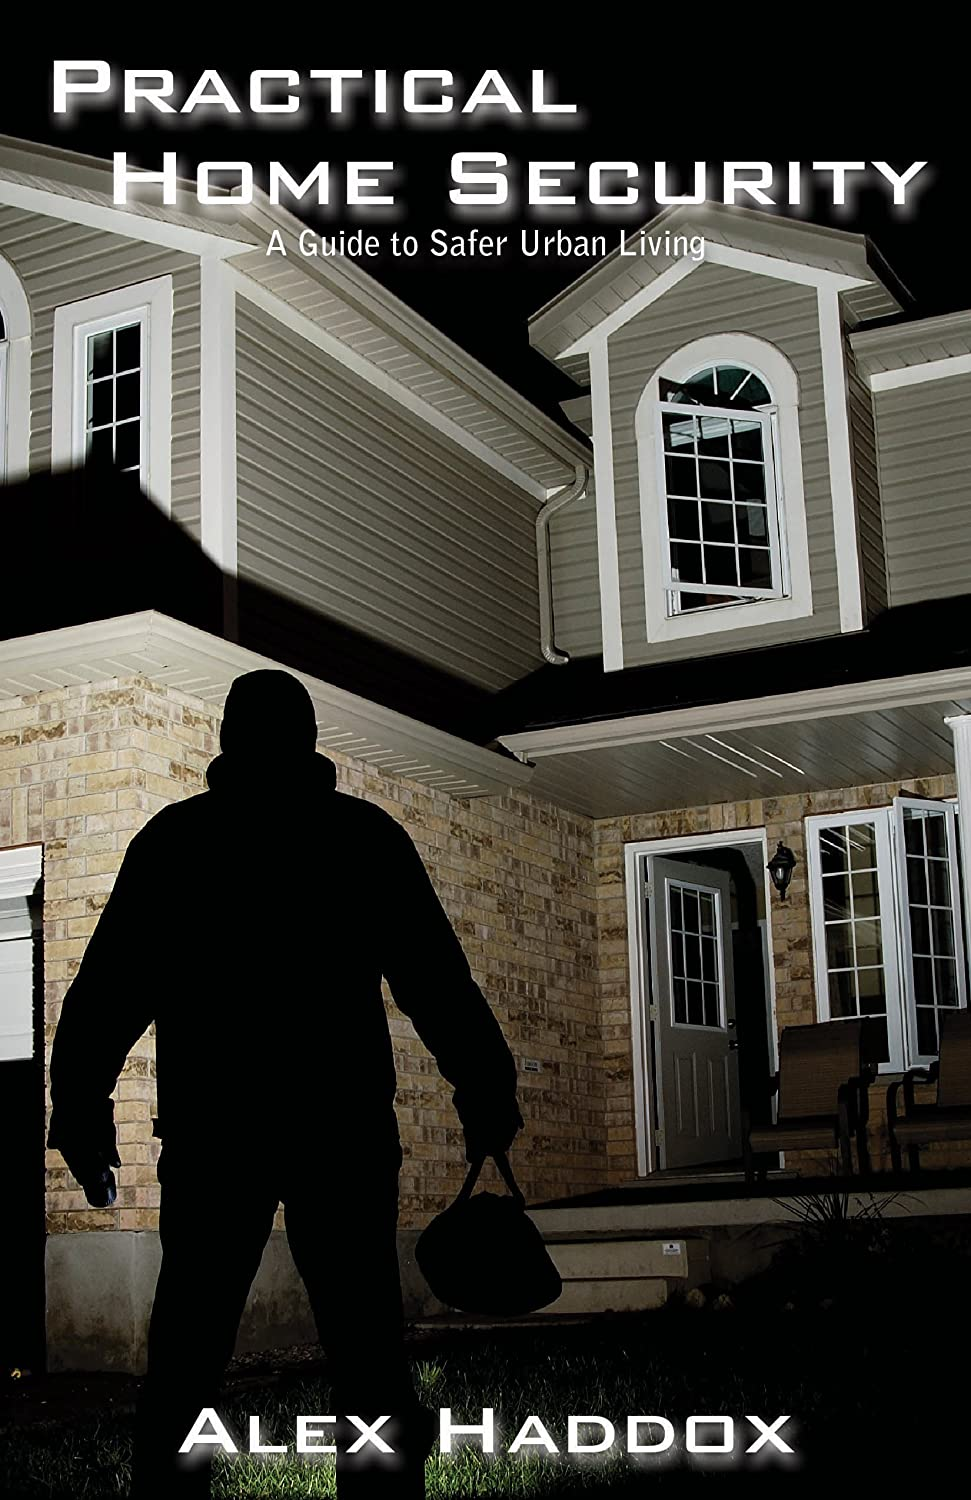 How to Protect Yourself From a Home Invasion